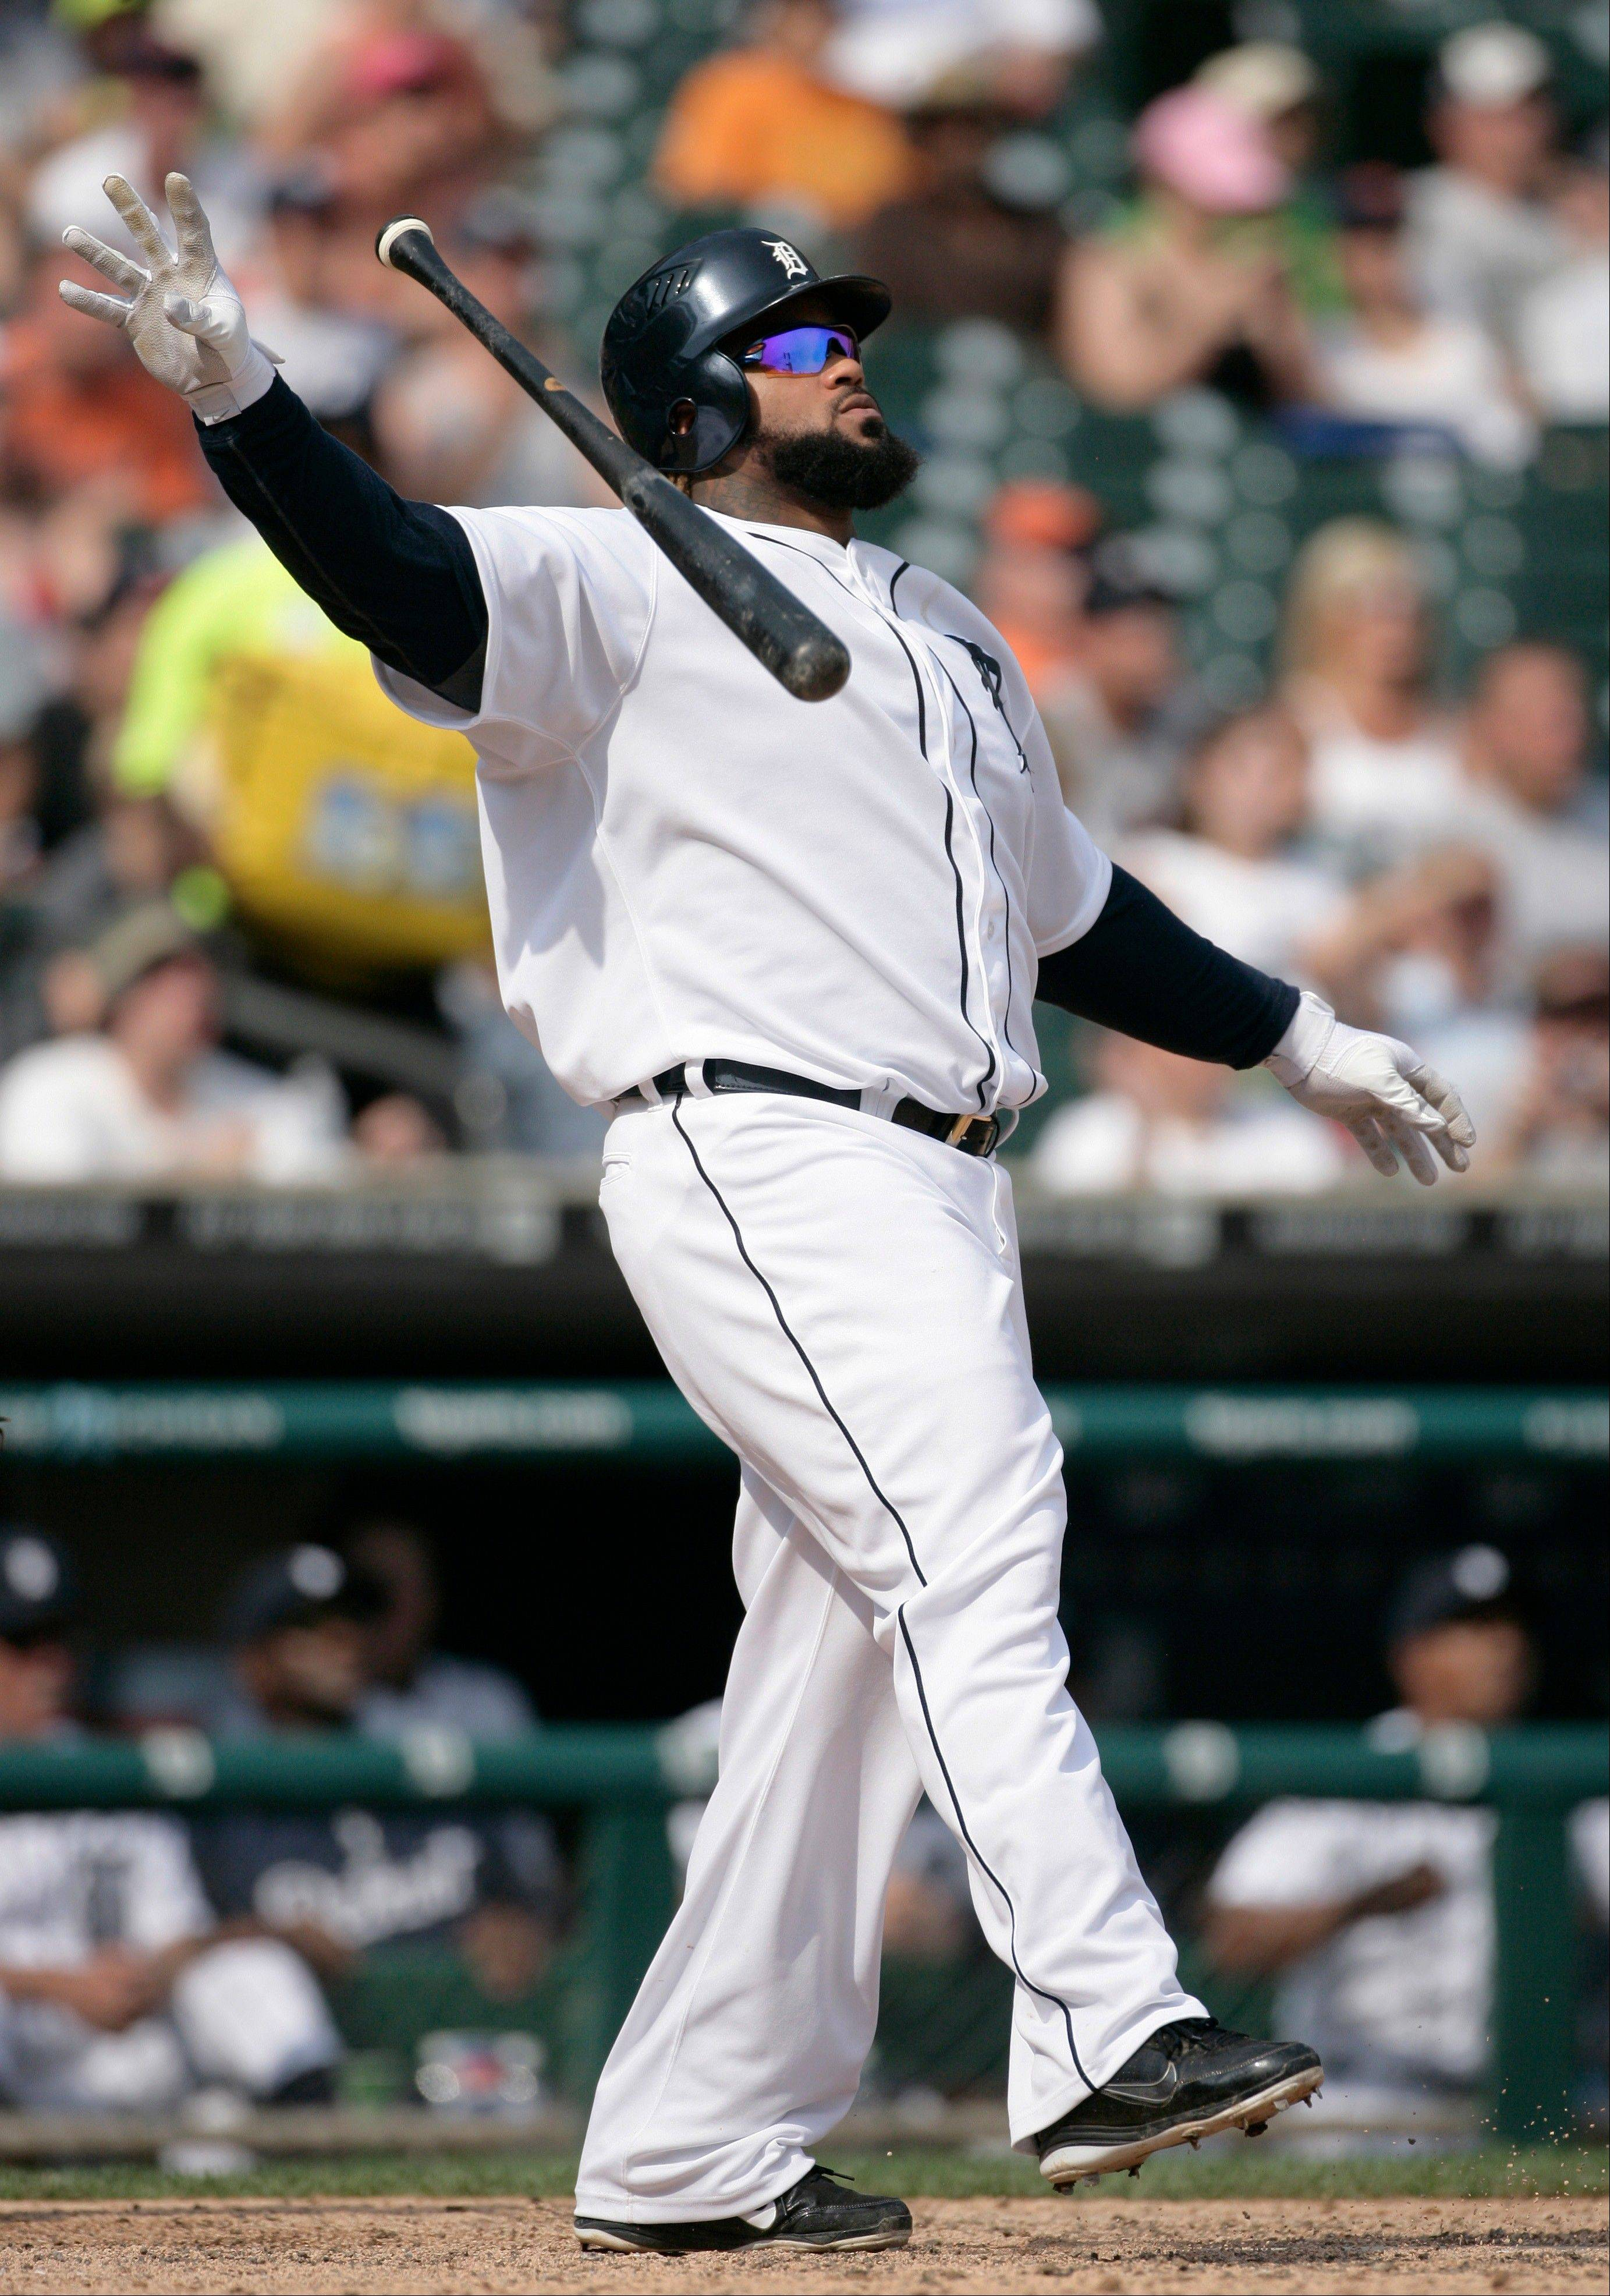 Detroit Tigers first baseman Prince Fielder watches his three-run home run that broke a 3-3 tie in the eighth inning against the Minnesota Twins in Detroit. The Tigers defeated the Twins 7-3.